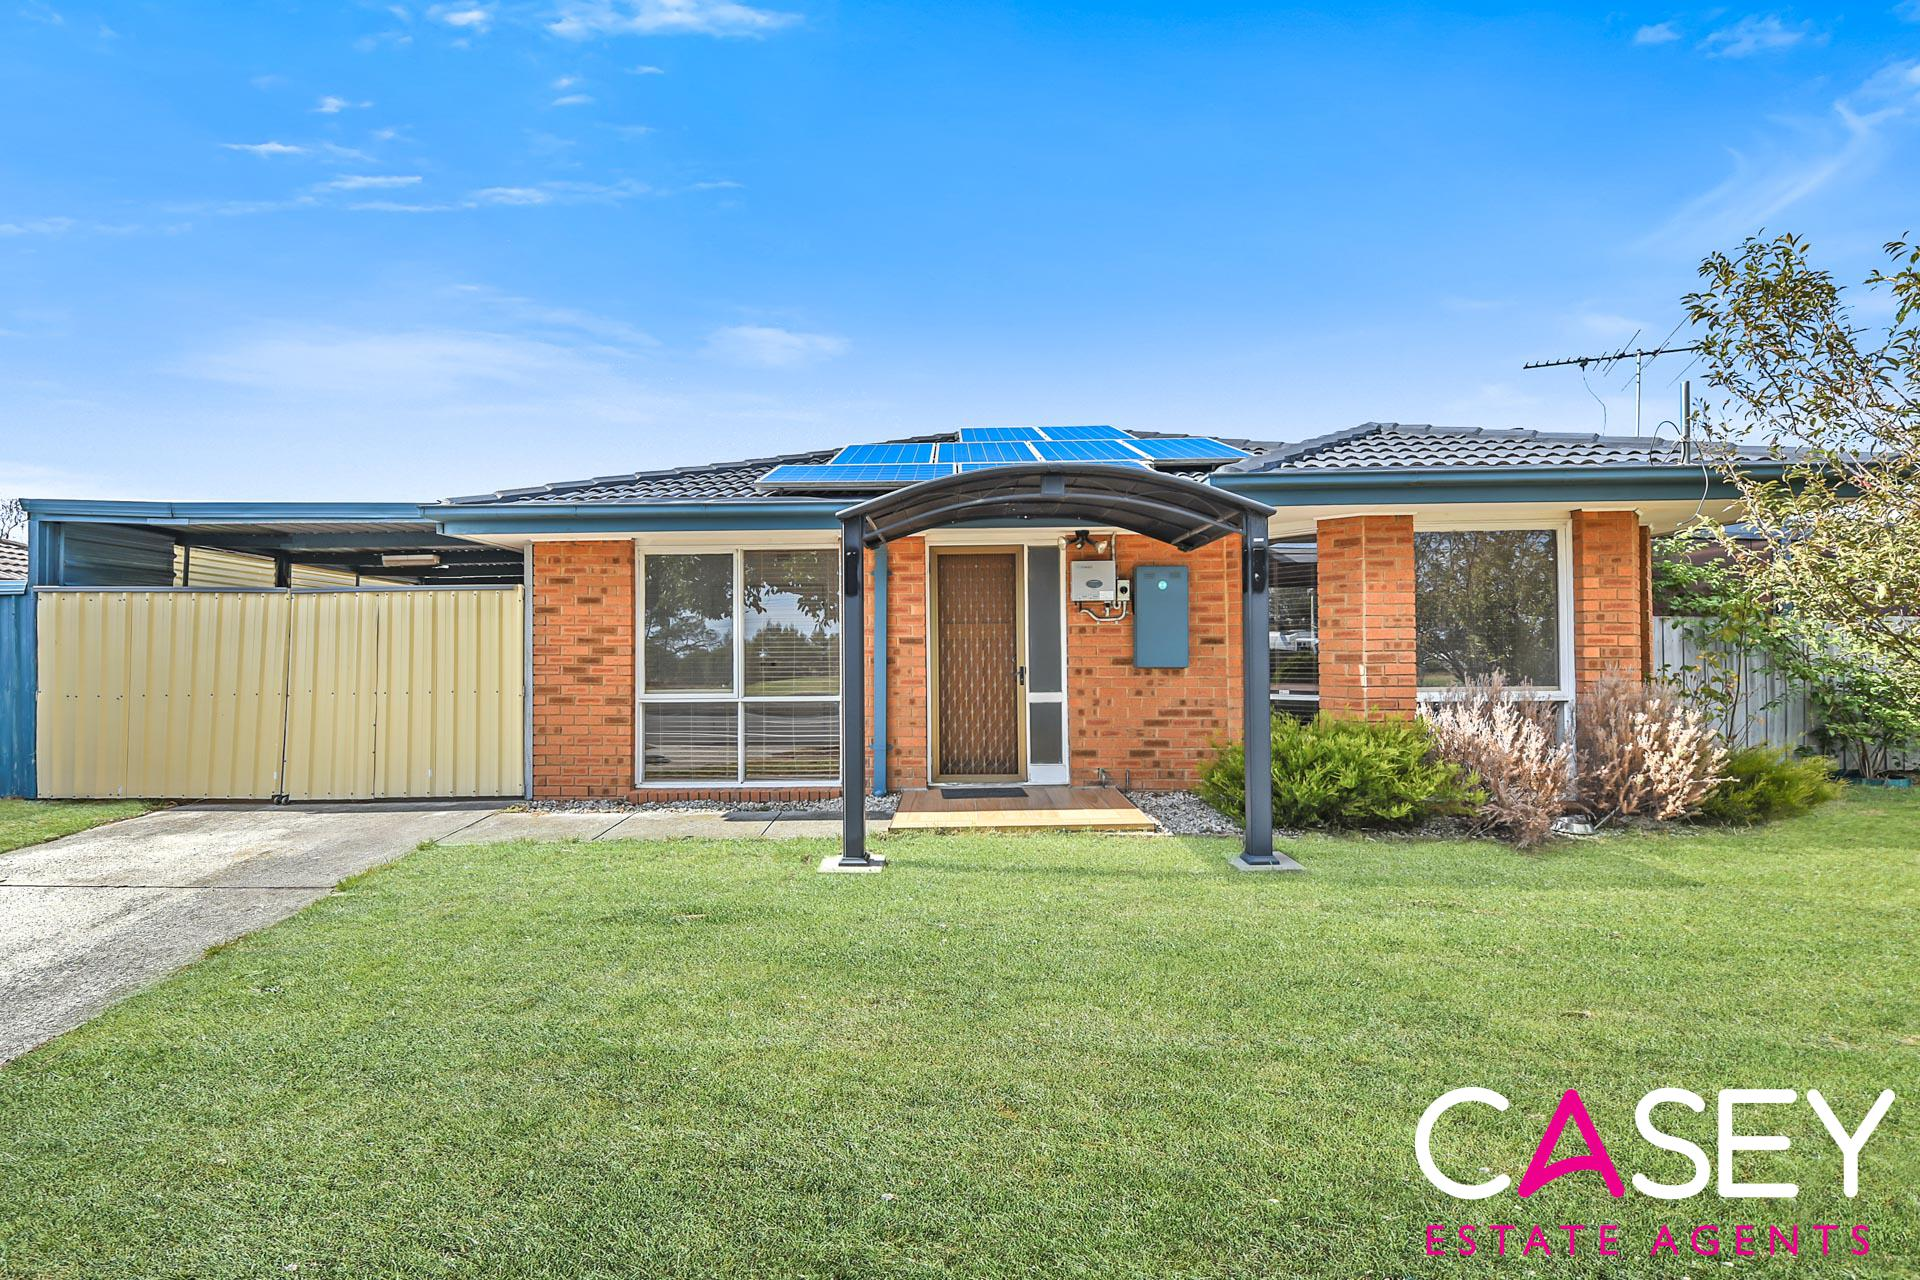 1/81 Endeavour Drive, CRANBOURNE NORTH, VIC, 3977 - Image